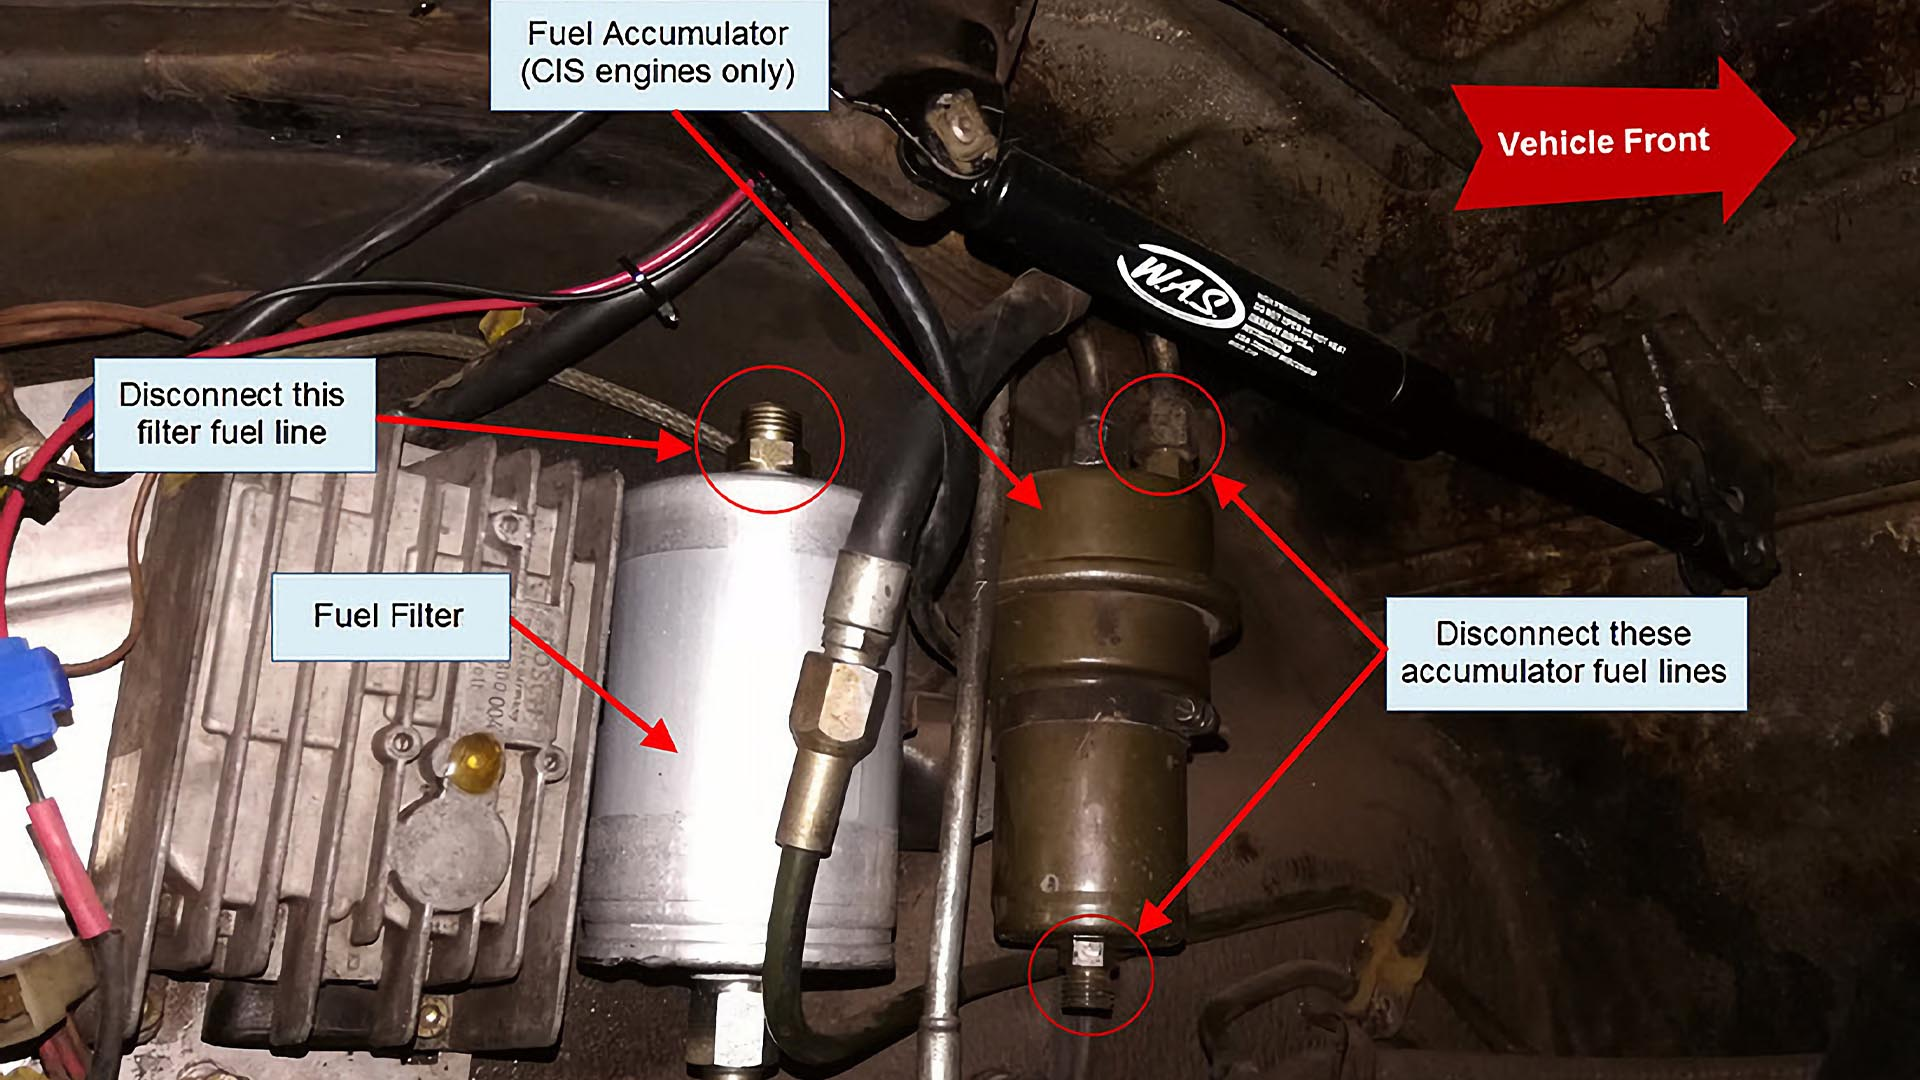 [SCHEMATICS_43NM]  How To Replace The Fuel Filter, Tank Screen, And Fuel Level Sensor On An  Air-Cooled Porsche 911 | Vw Fuel Filter Removal Tool |  | FCP Euro's blogs